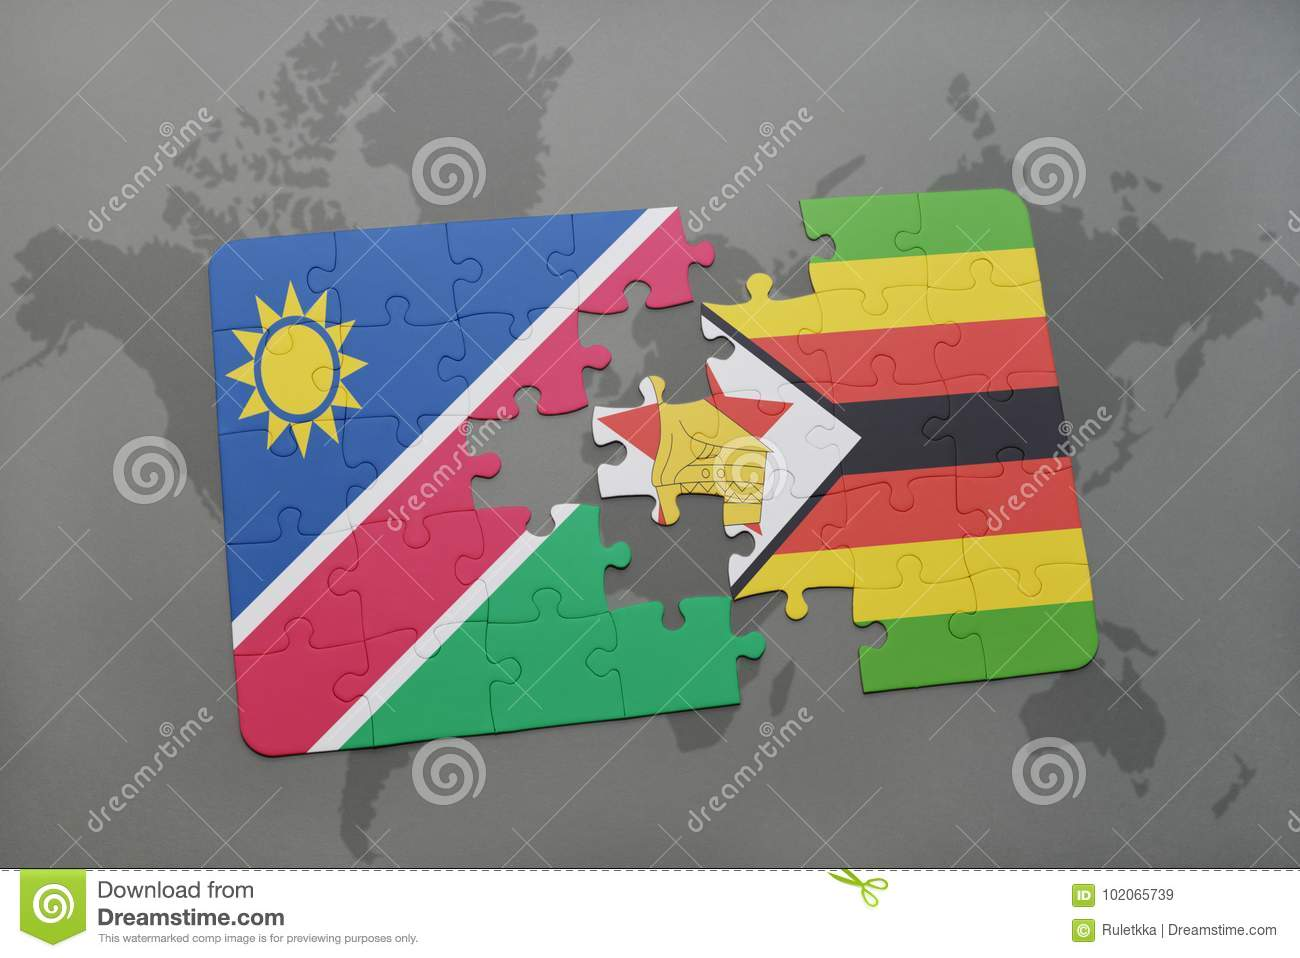 Puzzle With The National Flag Of Namibia And Zimbabwe On A World Map ...